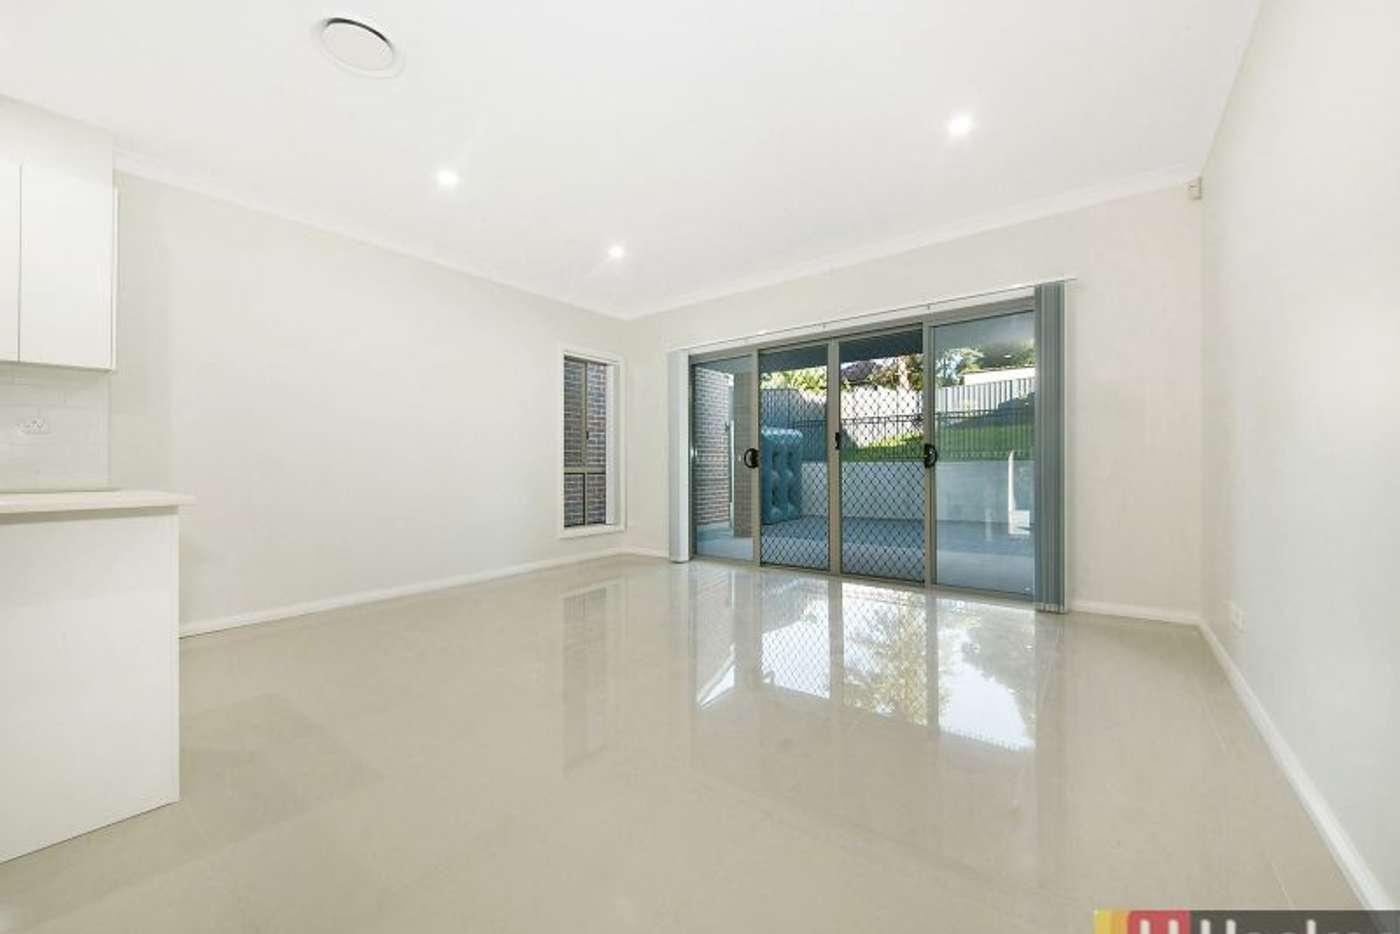 Fifth view of Homely house listing, 128b Lindesay St, Campbelltown NSW 2560